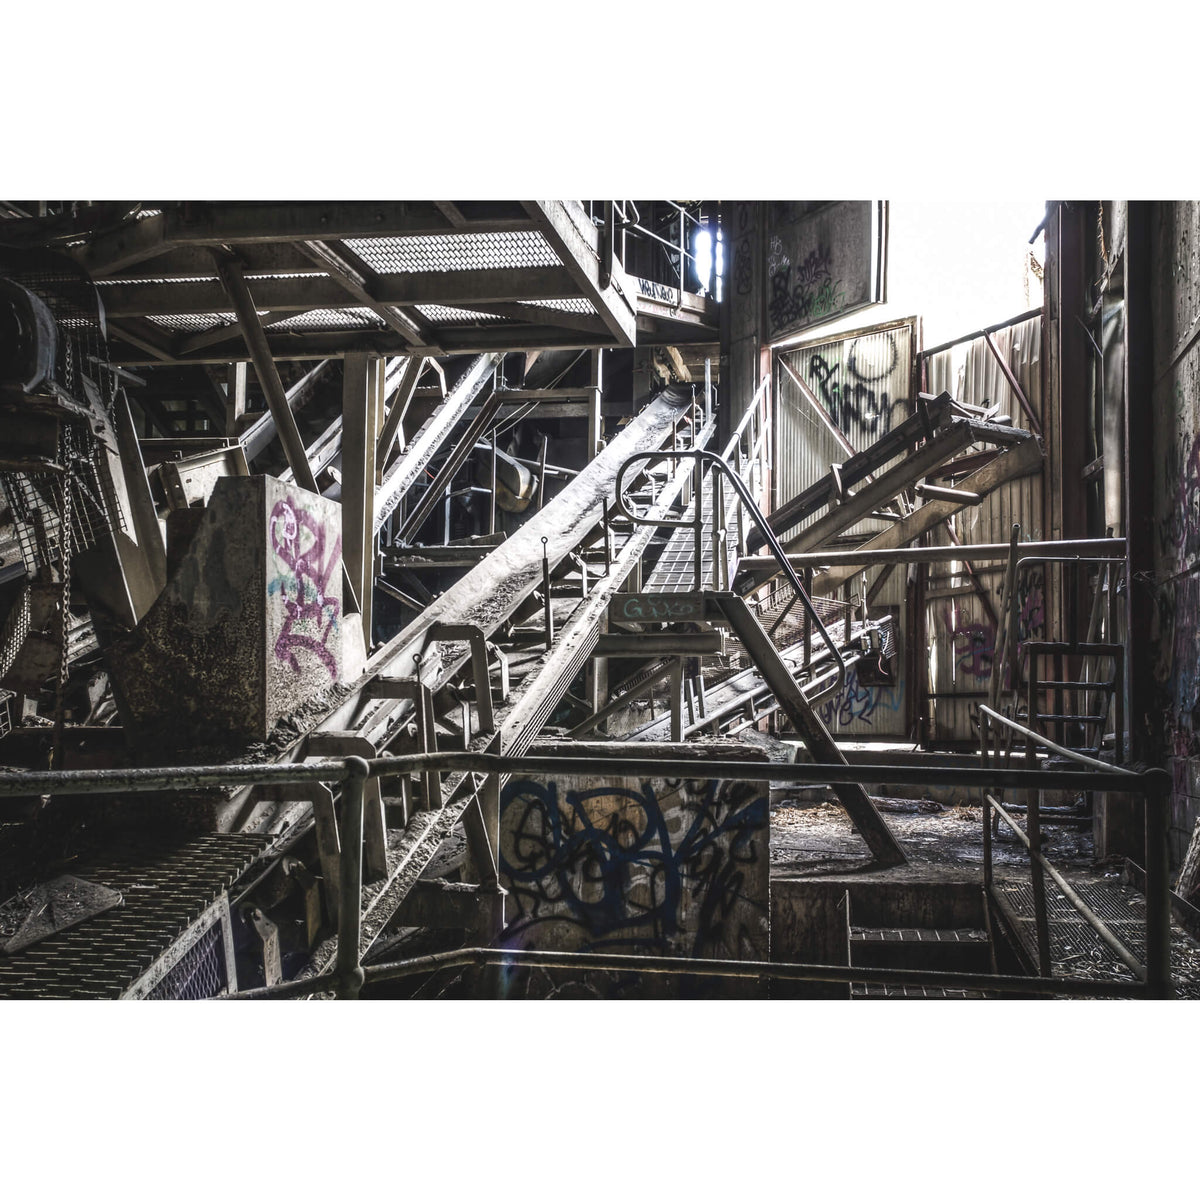 Screening Conveyor | Hornsby Quarry Fine Art Print - Lost Collective Shop